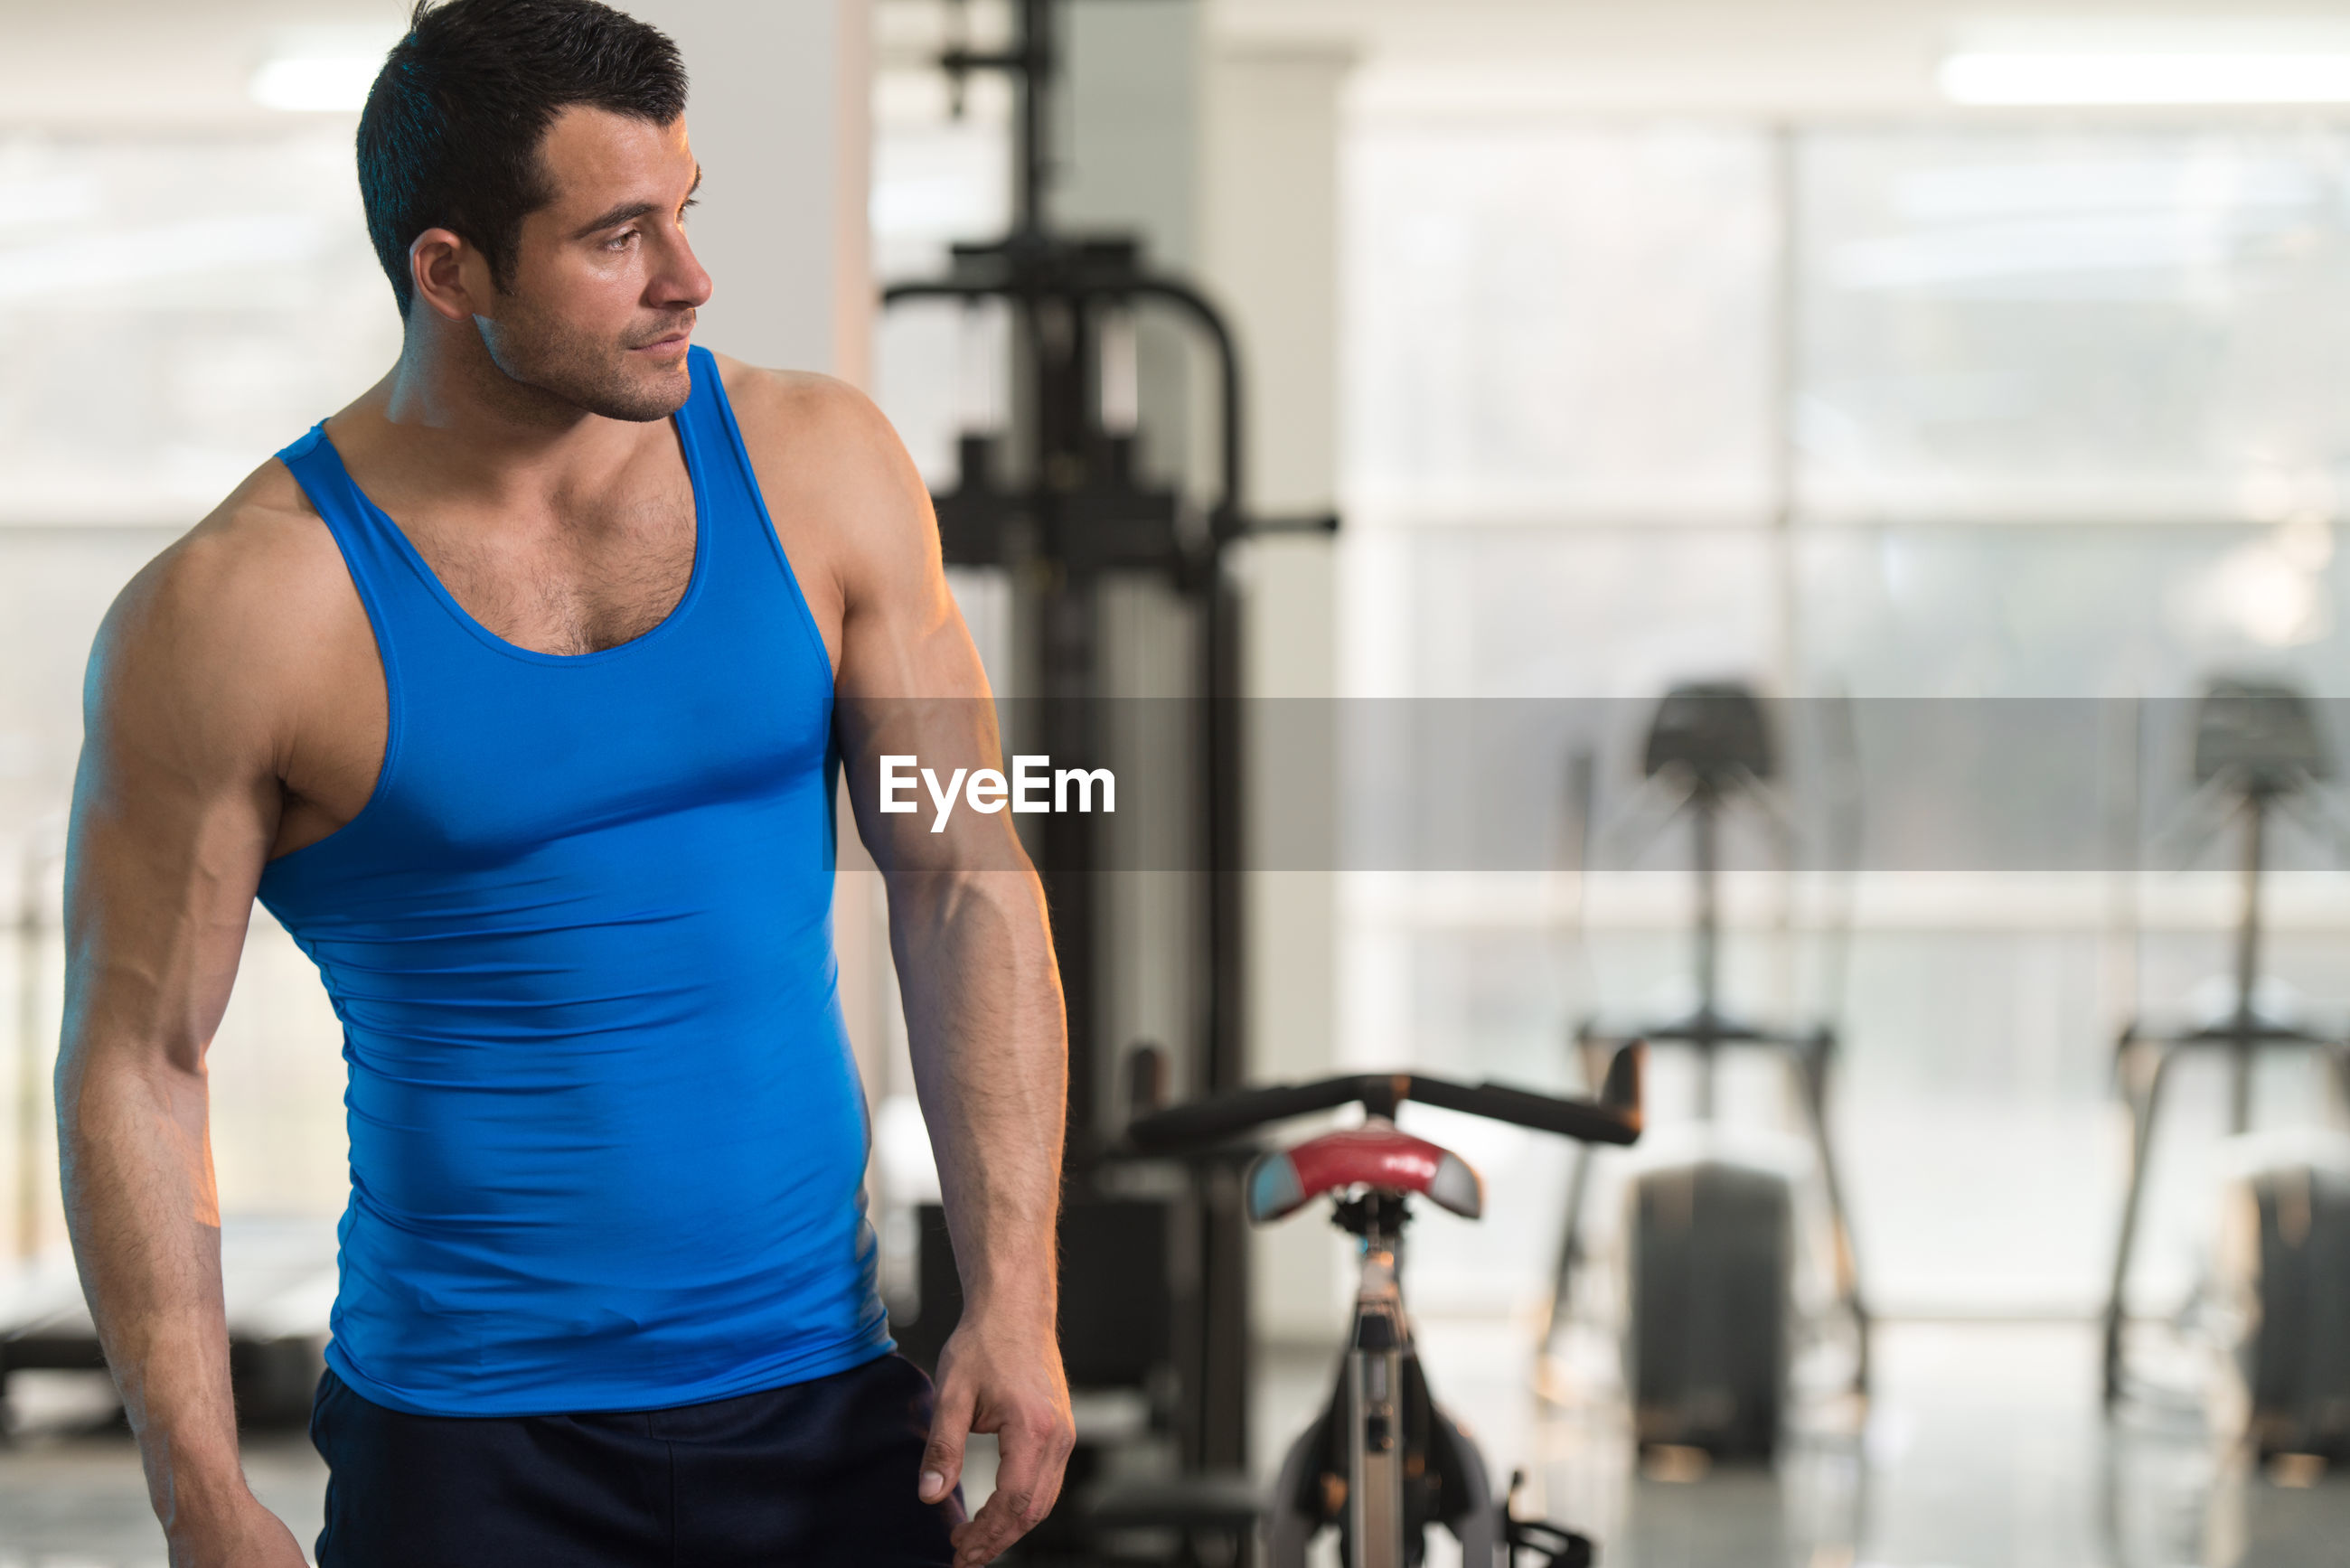 Muscular man wearing vest standing in gym